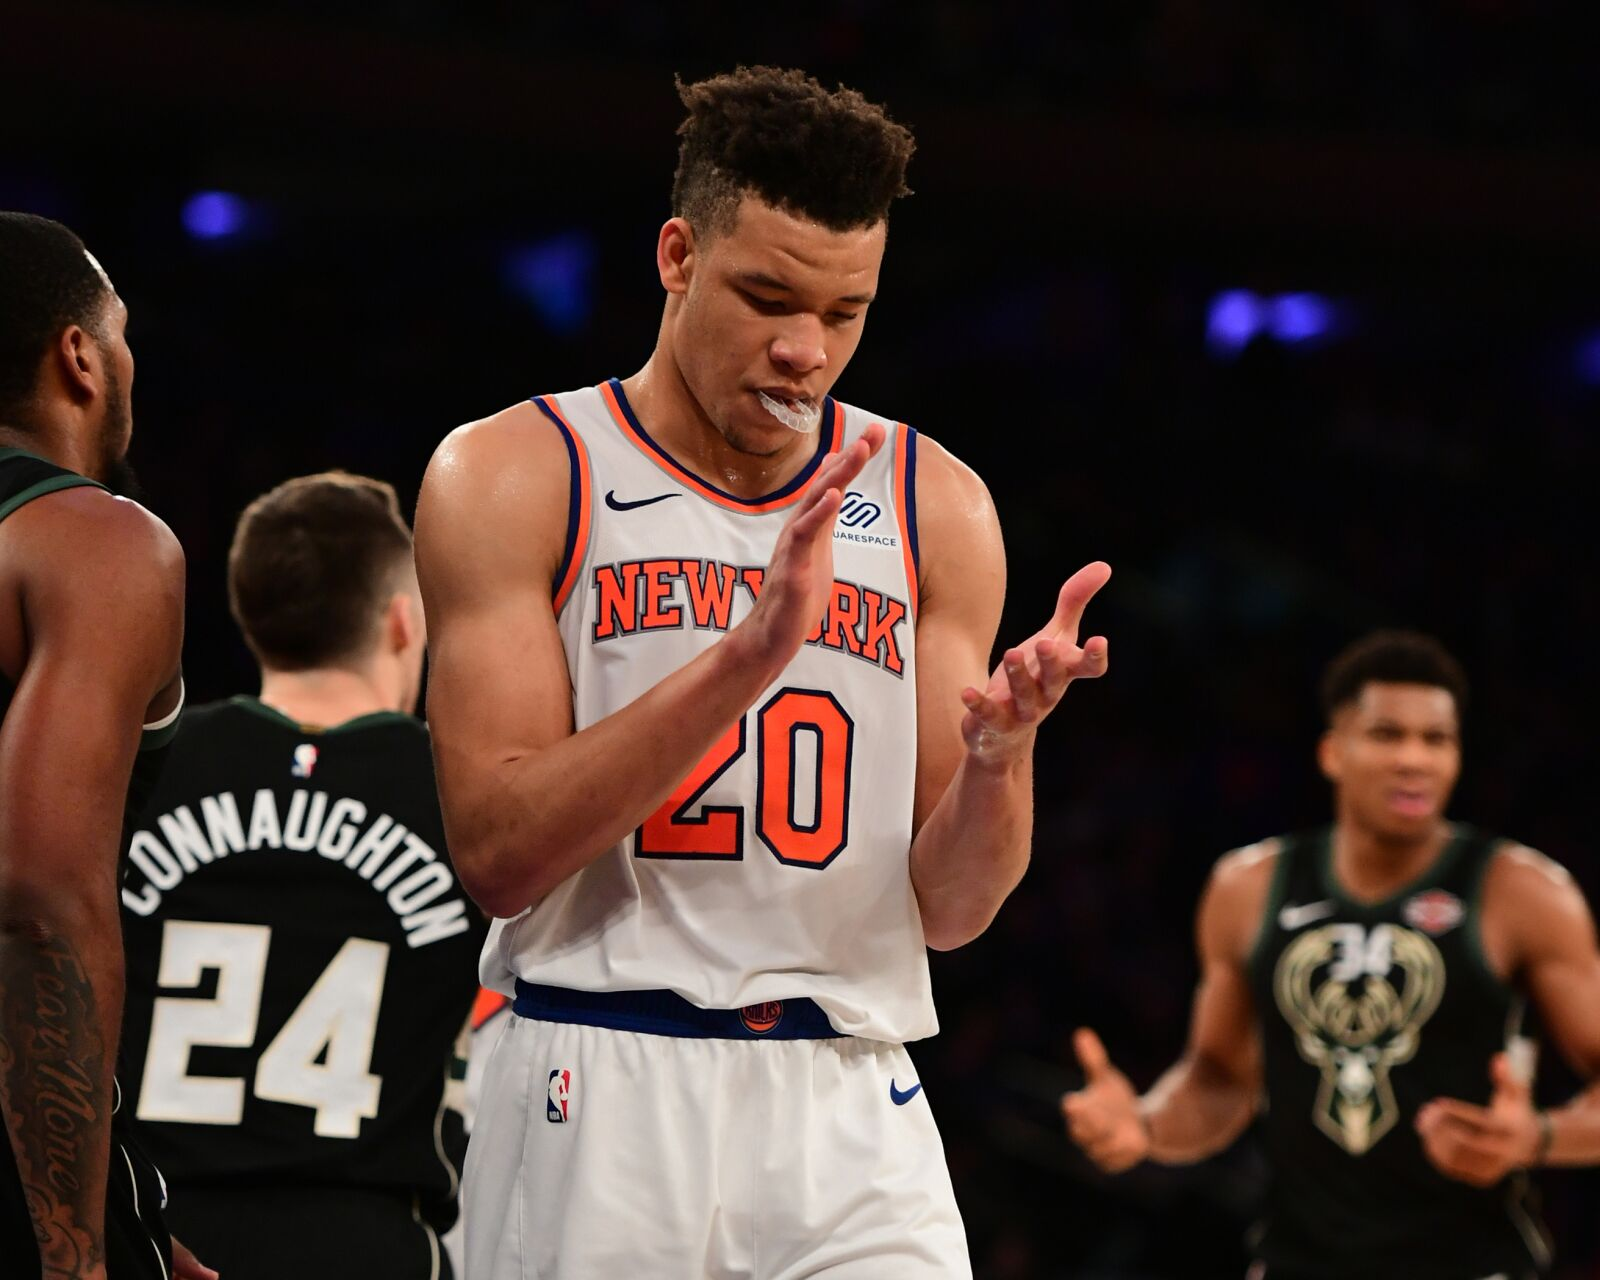 New York Knicks: Knicks go out with a whimper, have much to